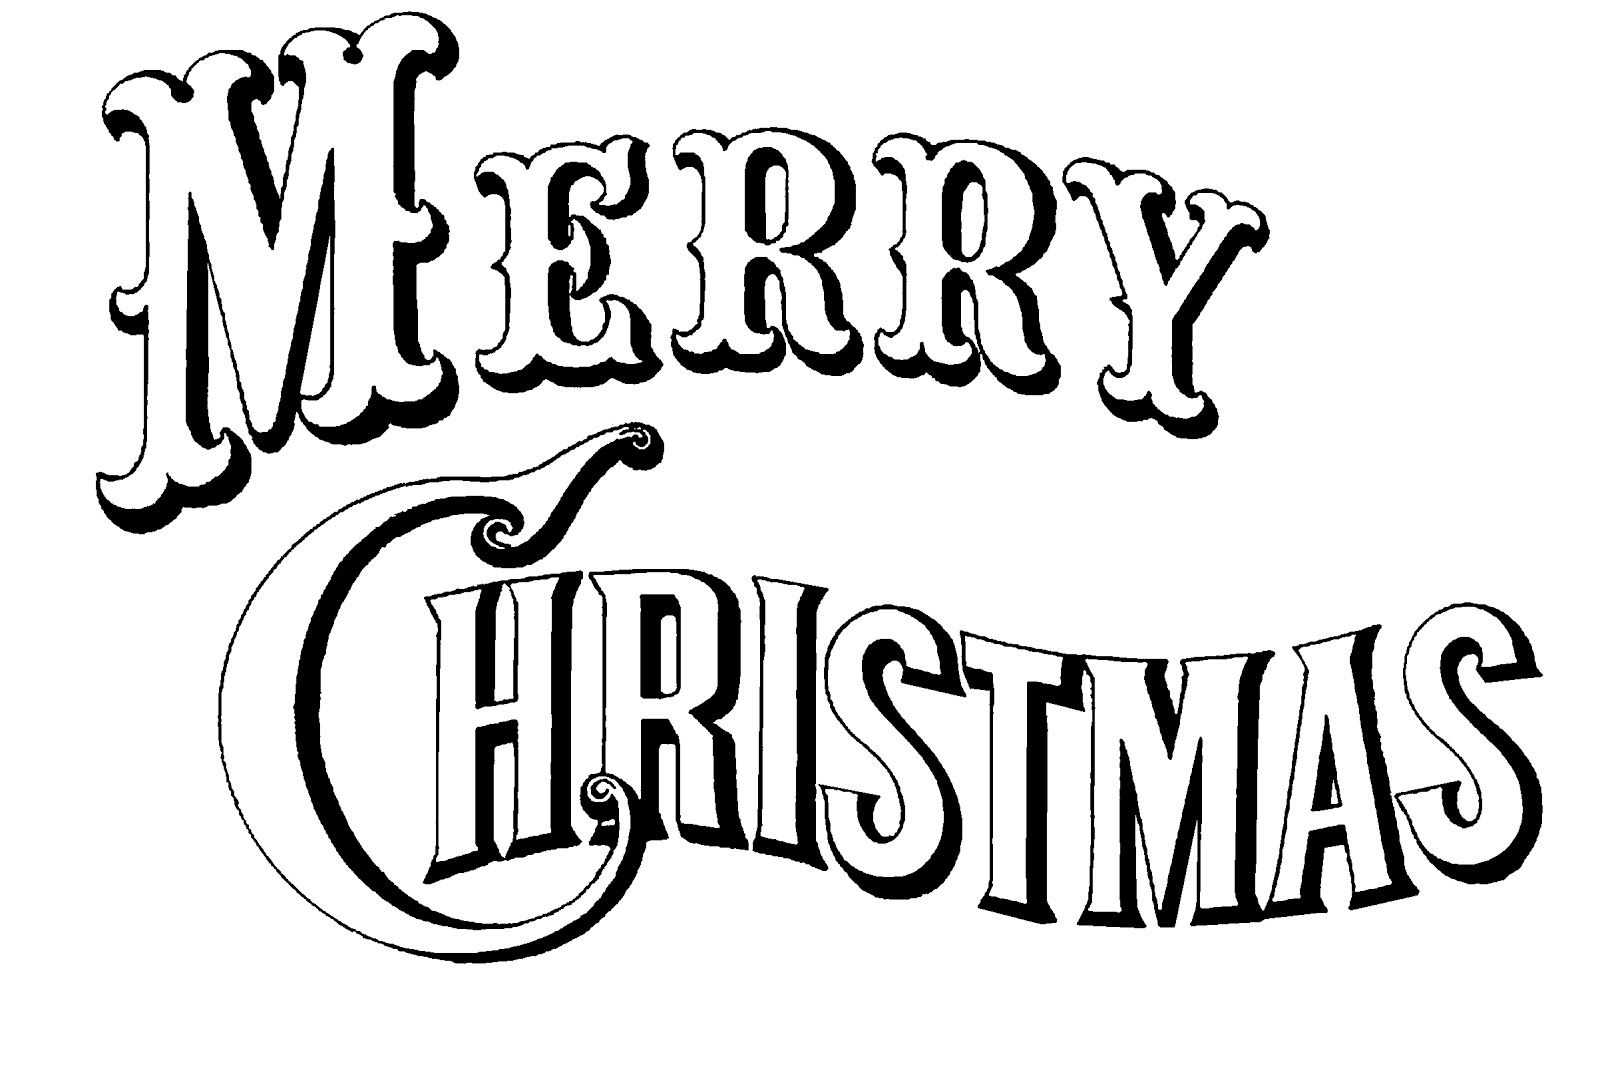 Merry Christmas Clipart to Print